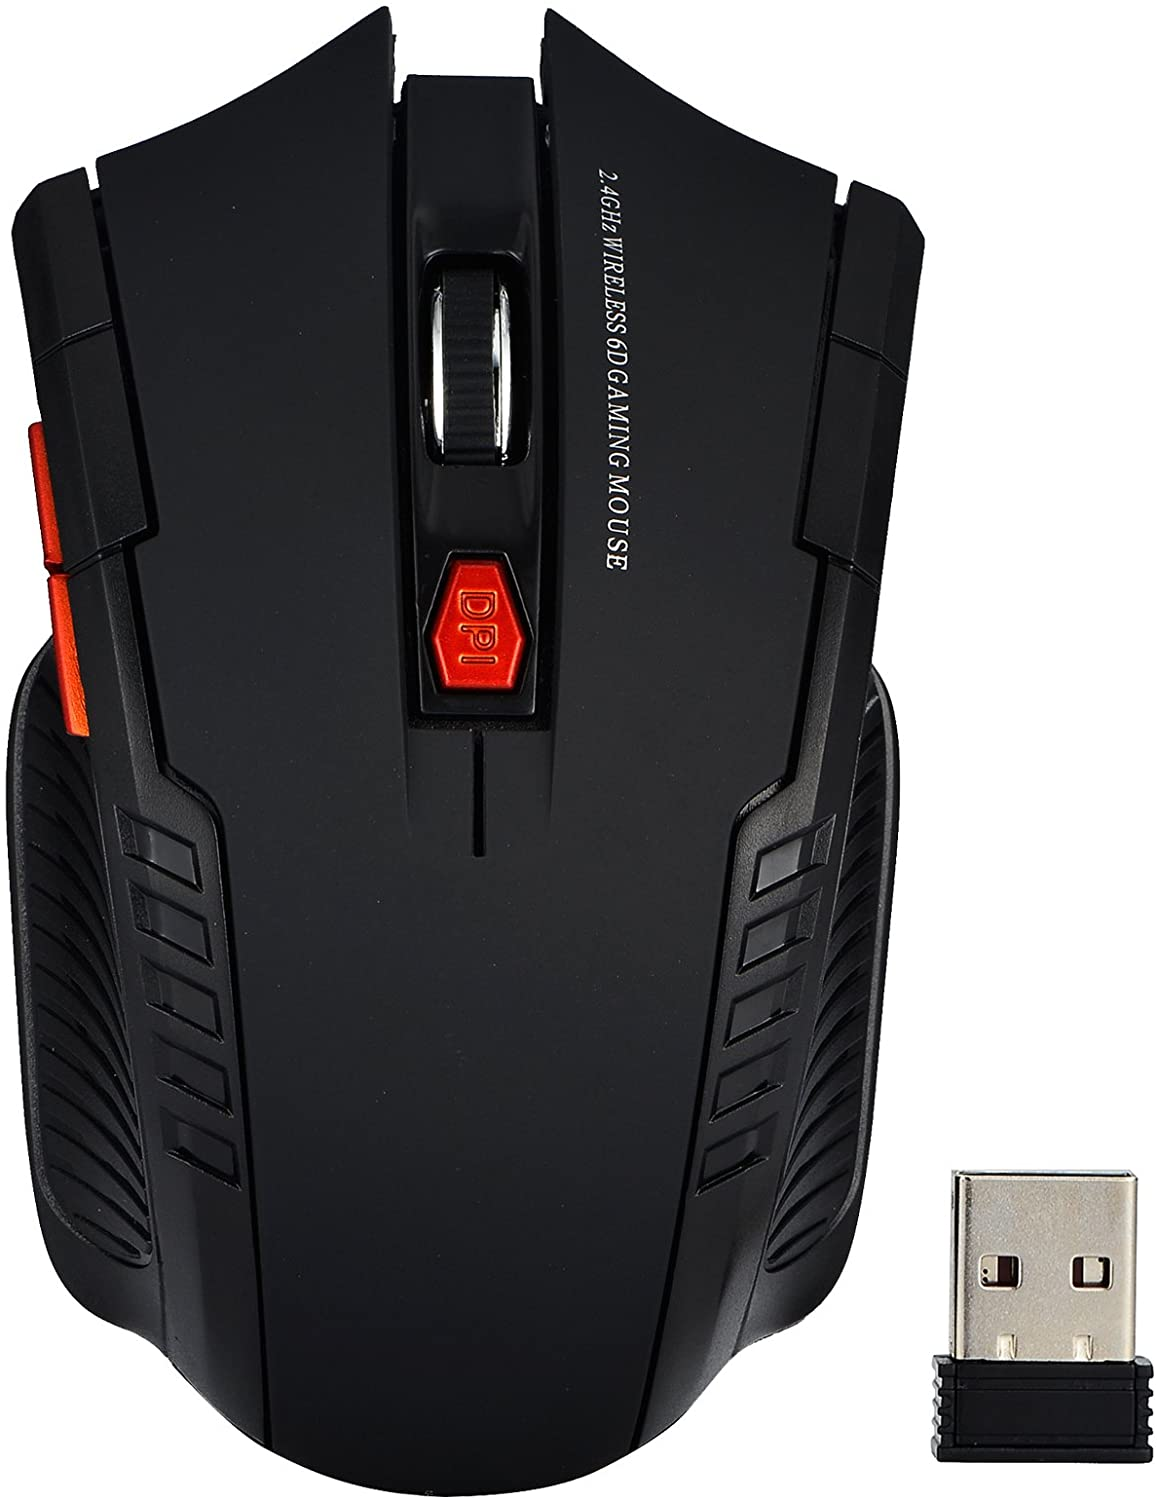 Optimal Shop 2.4G Portable Optical Wireless Mouse with USB Receiver for Notebook,PC,Laptop,Computer,3 Adjustable DPI Levels 800/1200/1600 and Side Controls (Black)